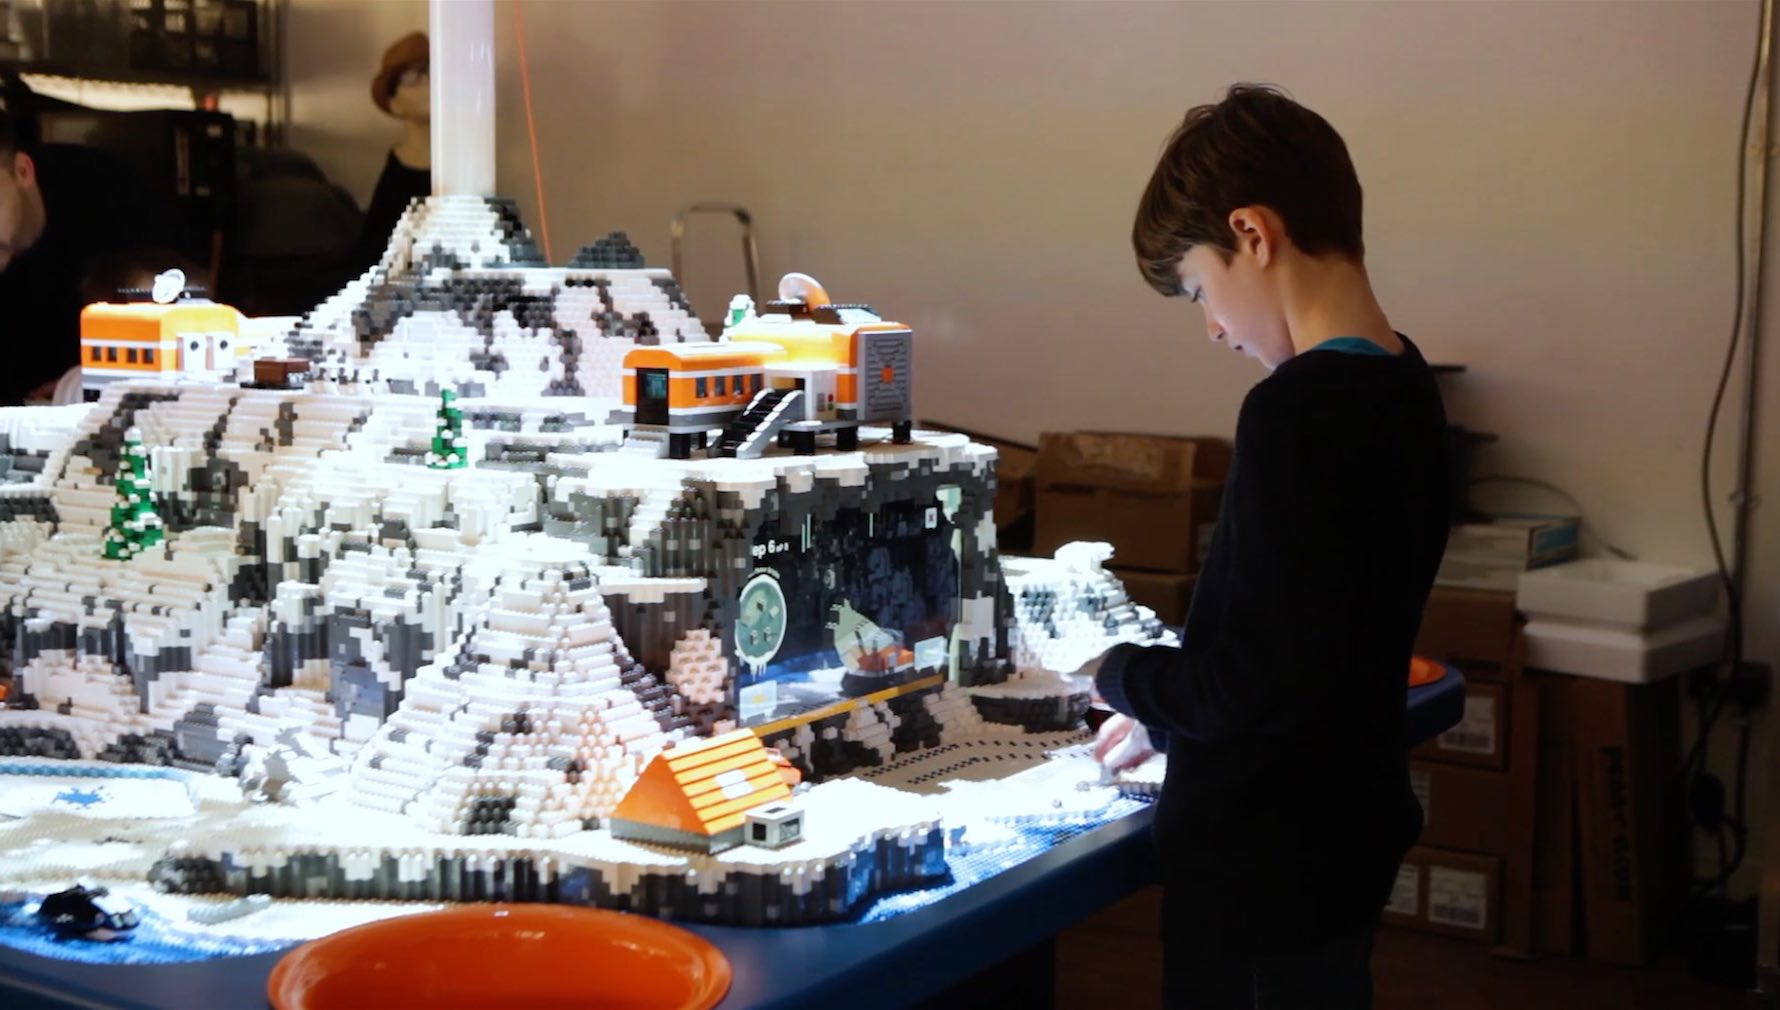 Lego Interactive Tables